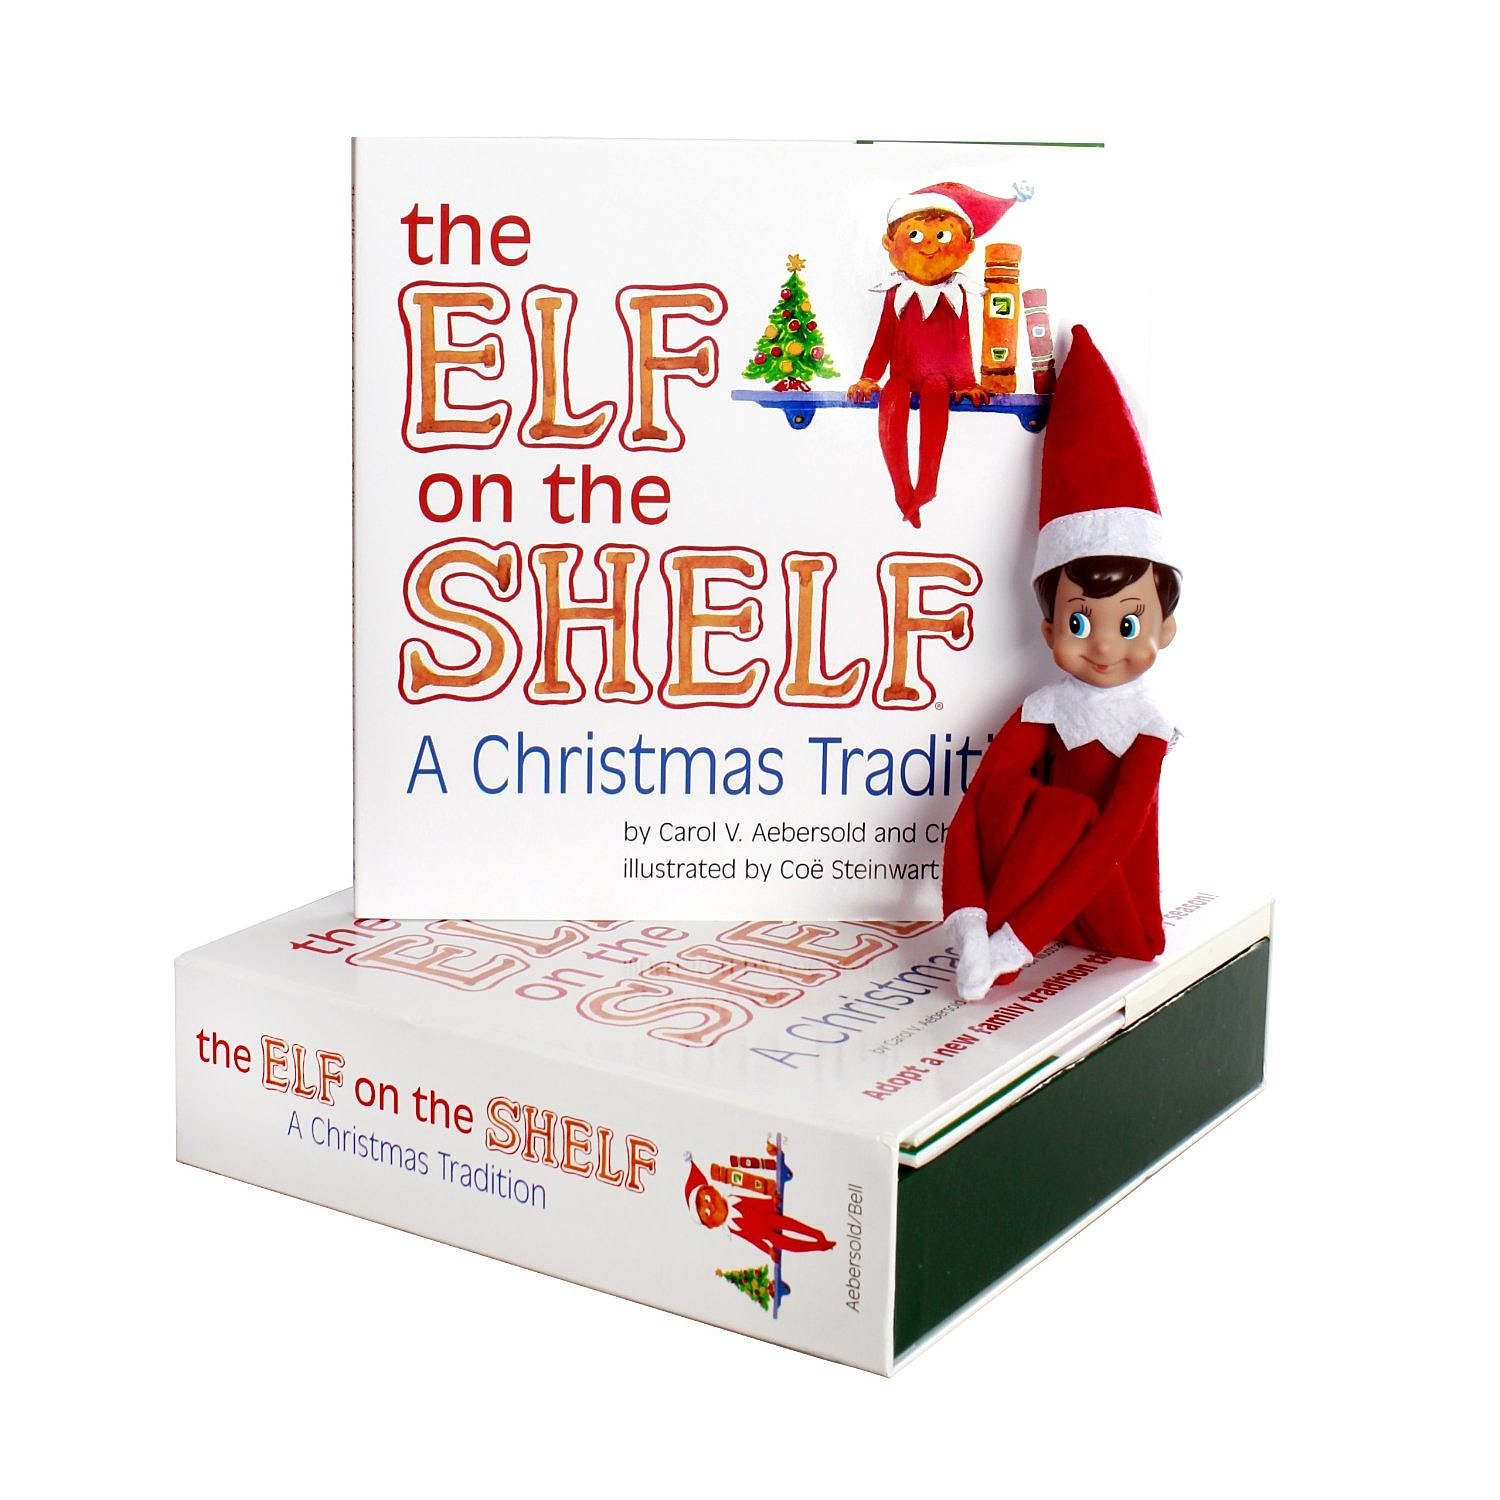 The Elf on the Shelf Puts the Creepy in Christmas